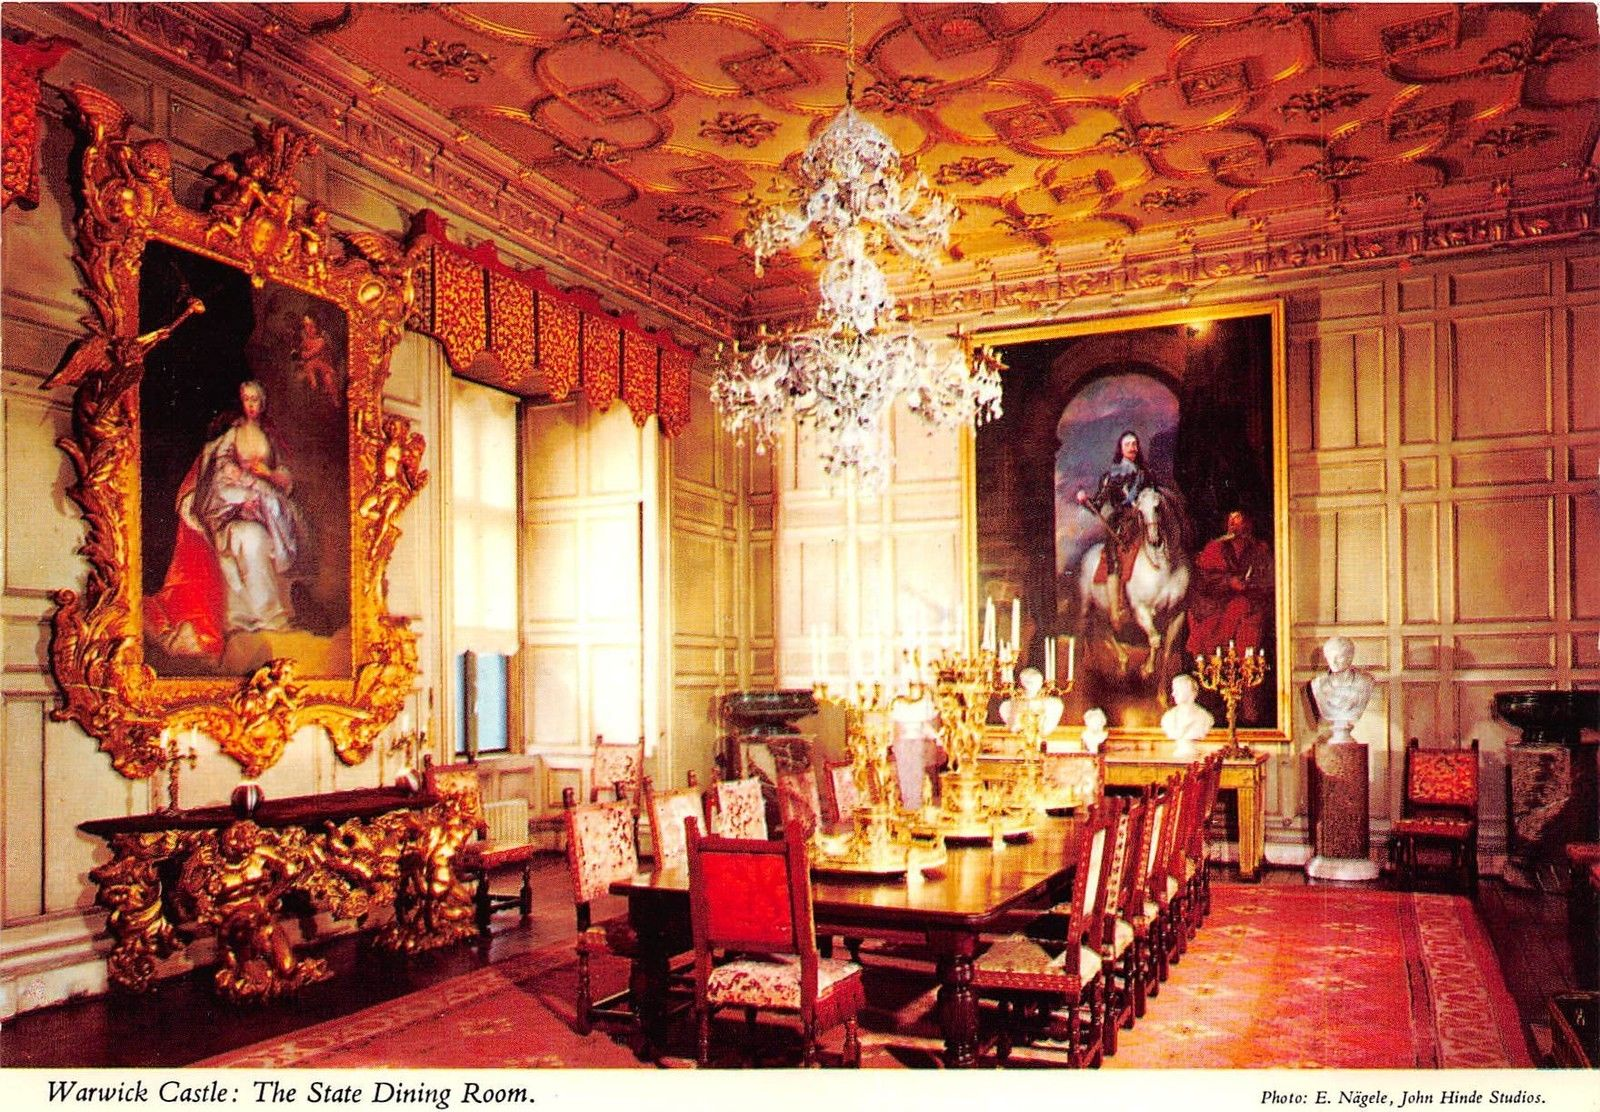 B87825 Warwick Castle The State Dining, Warwick Castle State Dining Room Set